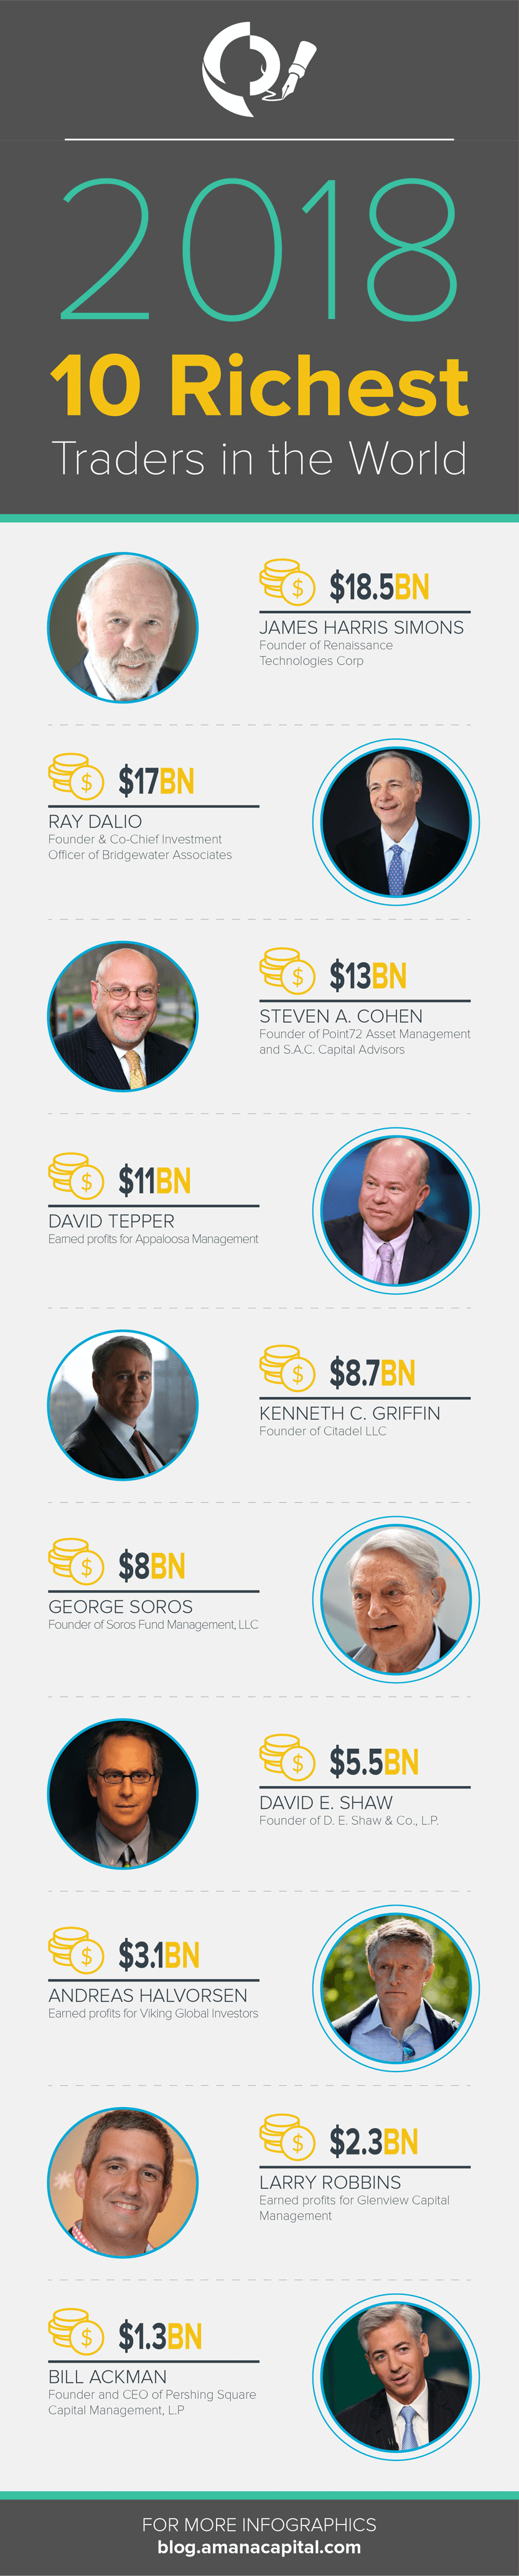 10 Richest Traders Worldwide